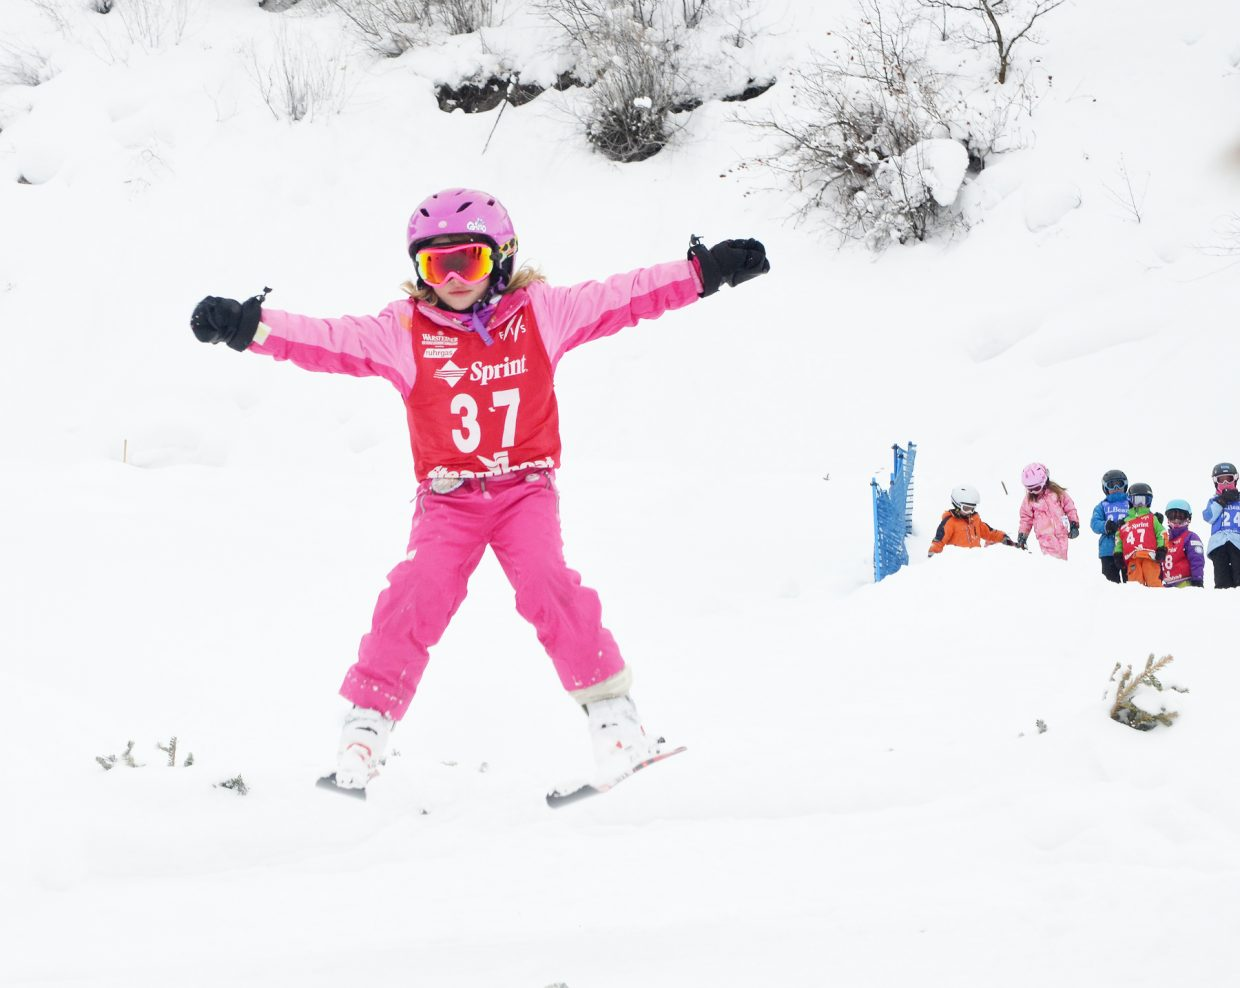 Kiki Croke, 7, lands a good jump off the HS 20 ski jump Friday at Howelsen Hill during Steamboat Springs' 101st Winter Carnival.